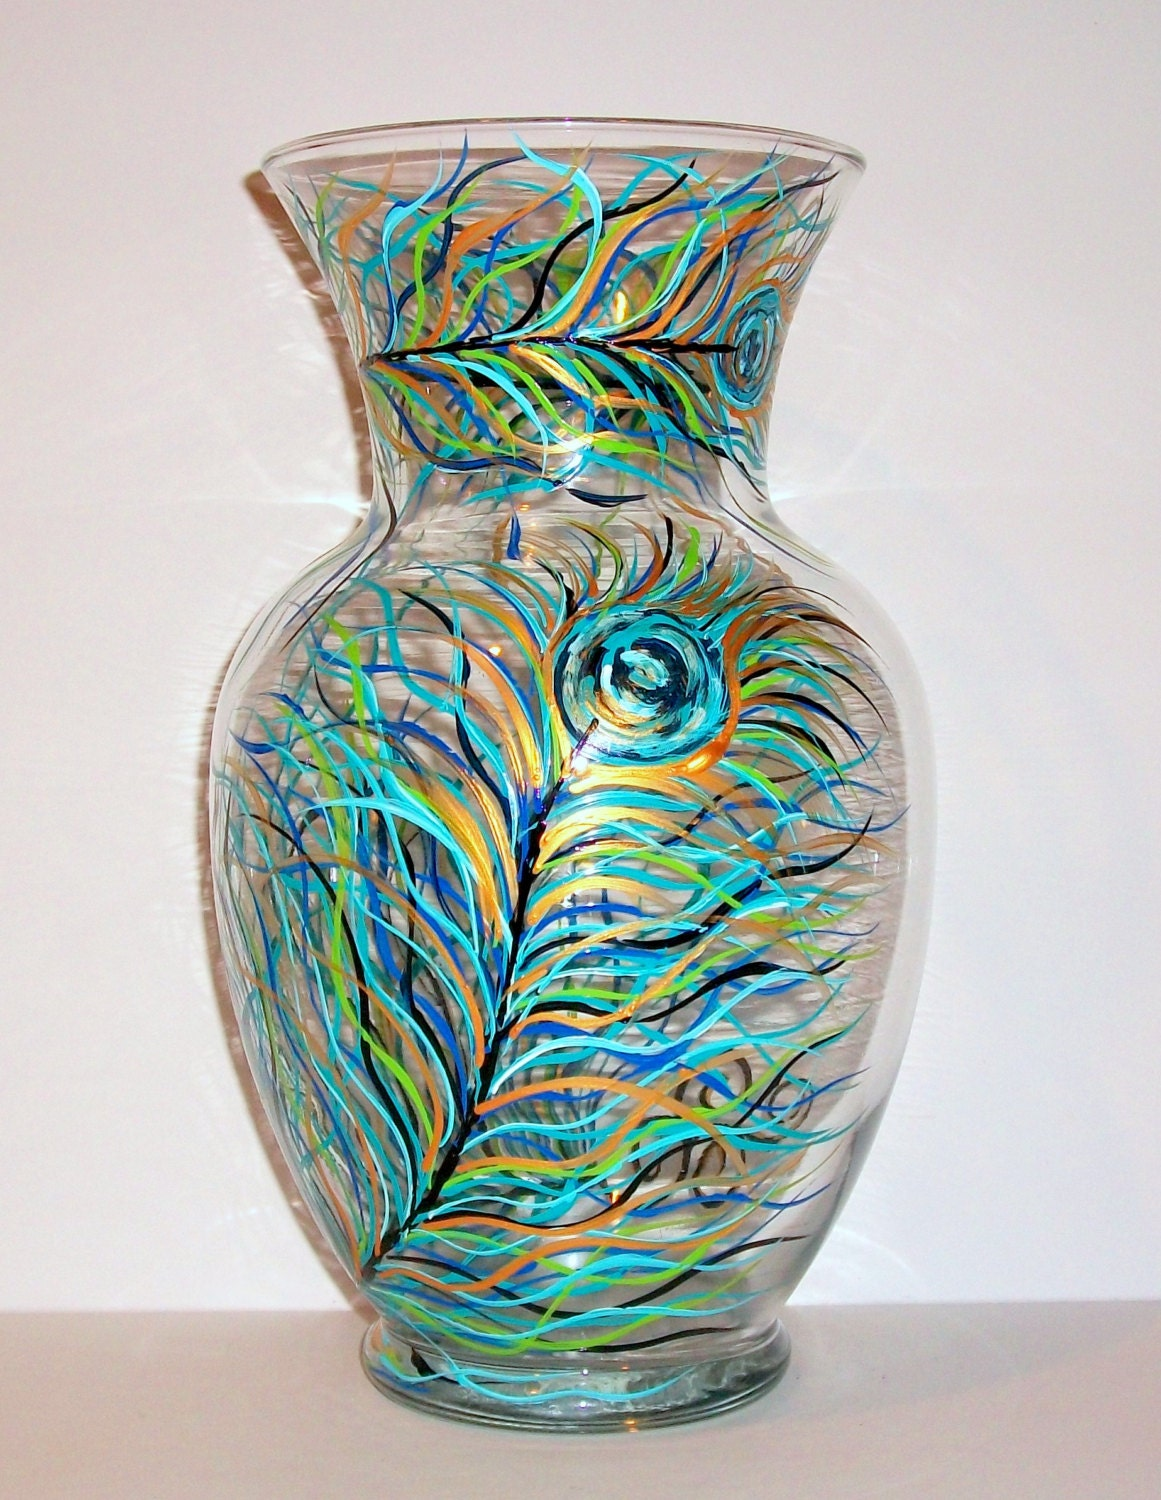 Peacock feather glass vase hand painted inches tall and